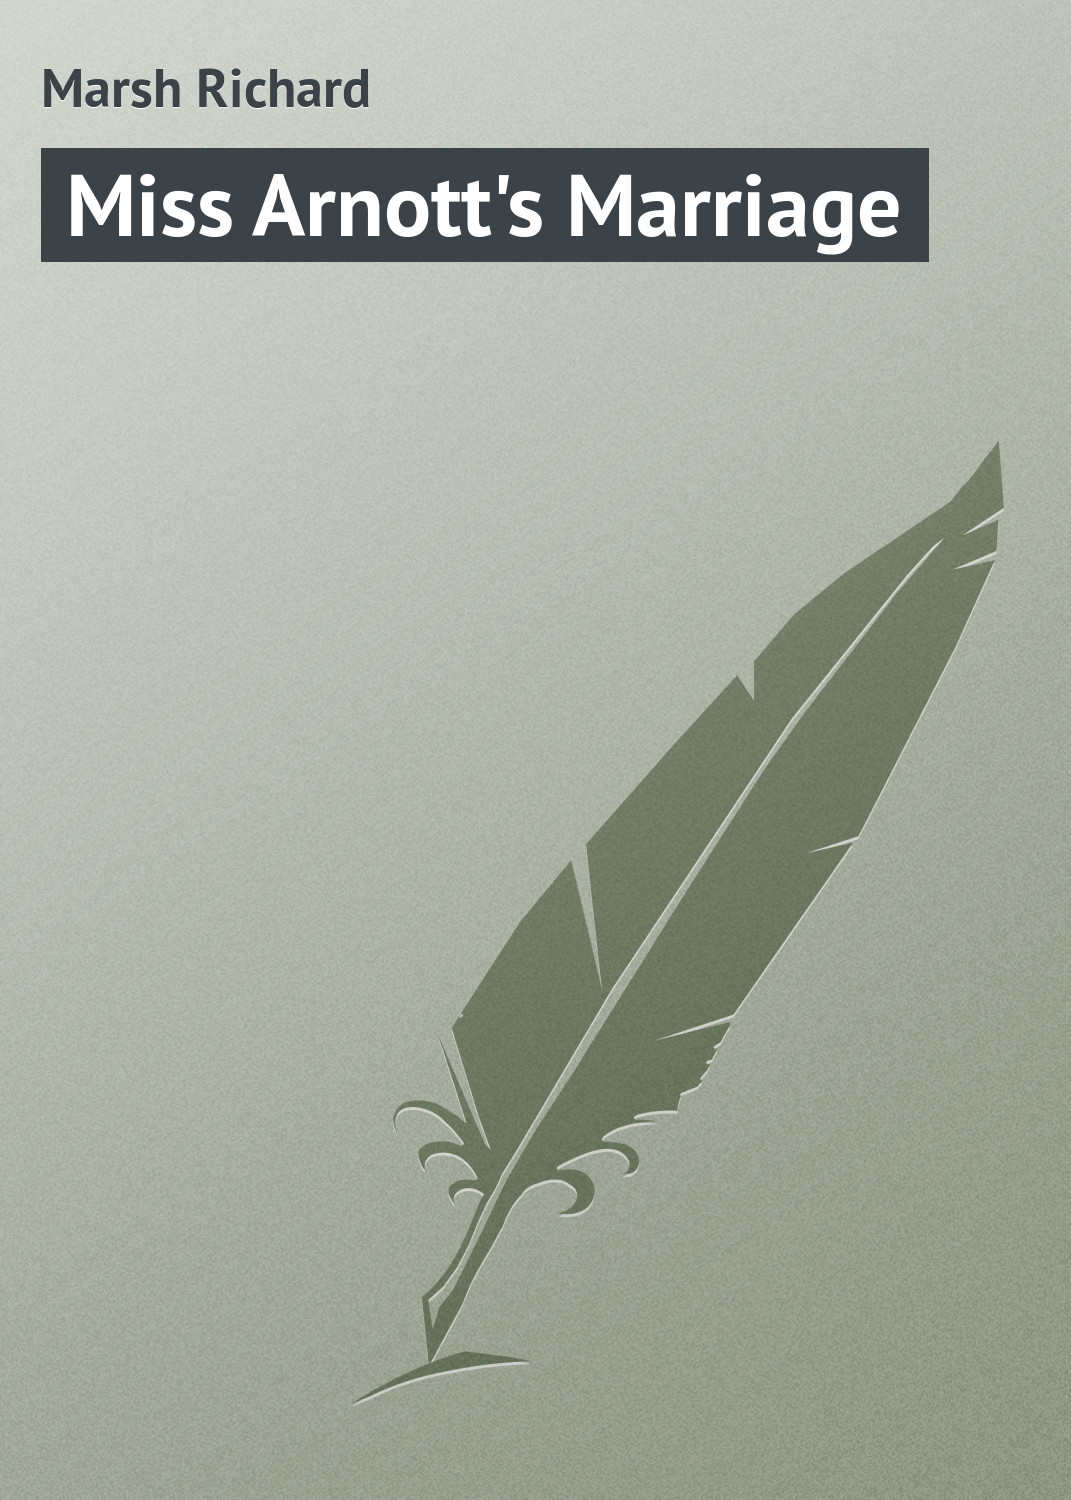 Marsh Richard Miss Arnott's Marriage